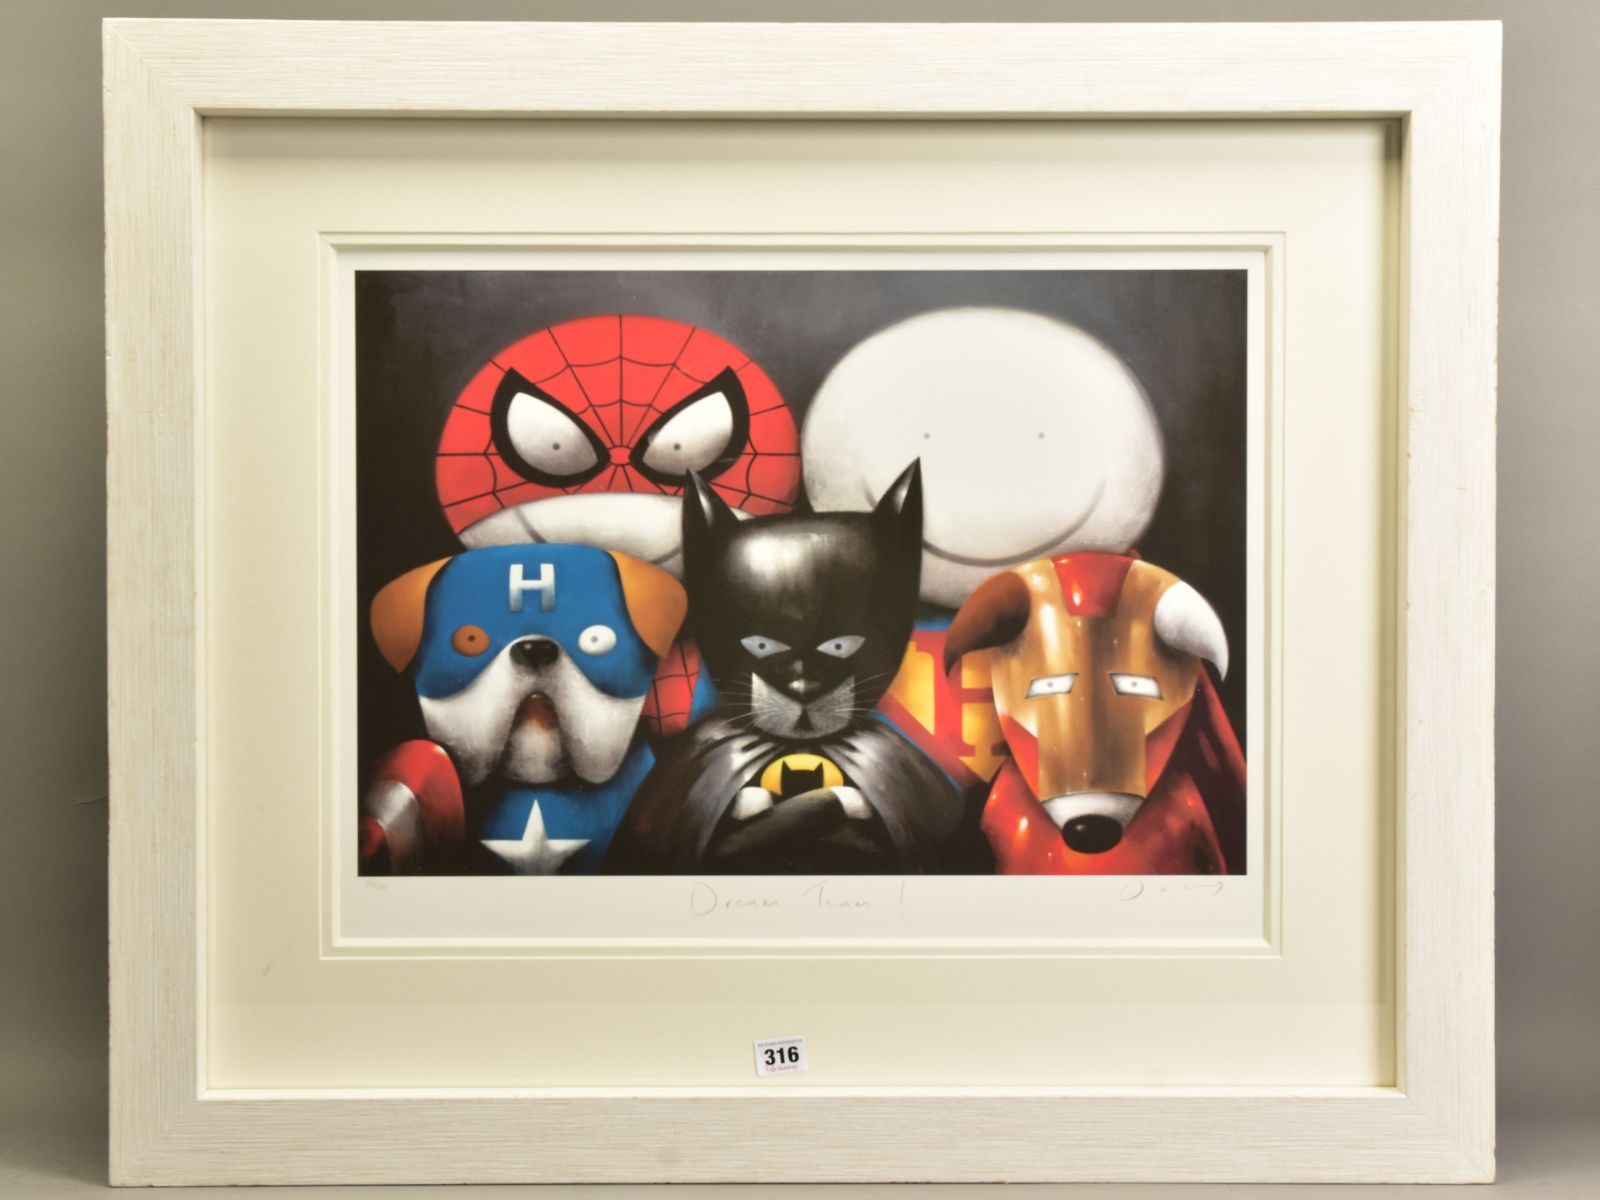 DOUG HYDE (BRITISH 1972) 'DREAM TEAM' a limited edition print of Superheroes in Disguise 213/295,